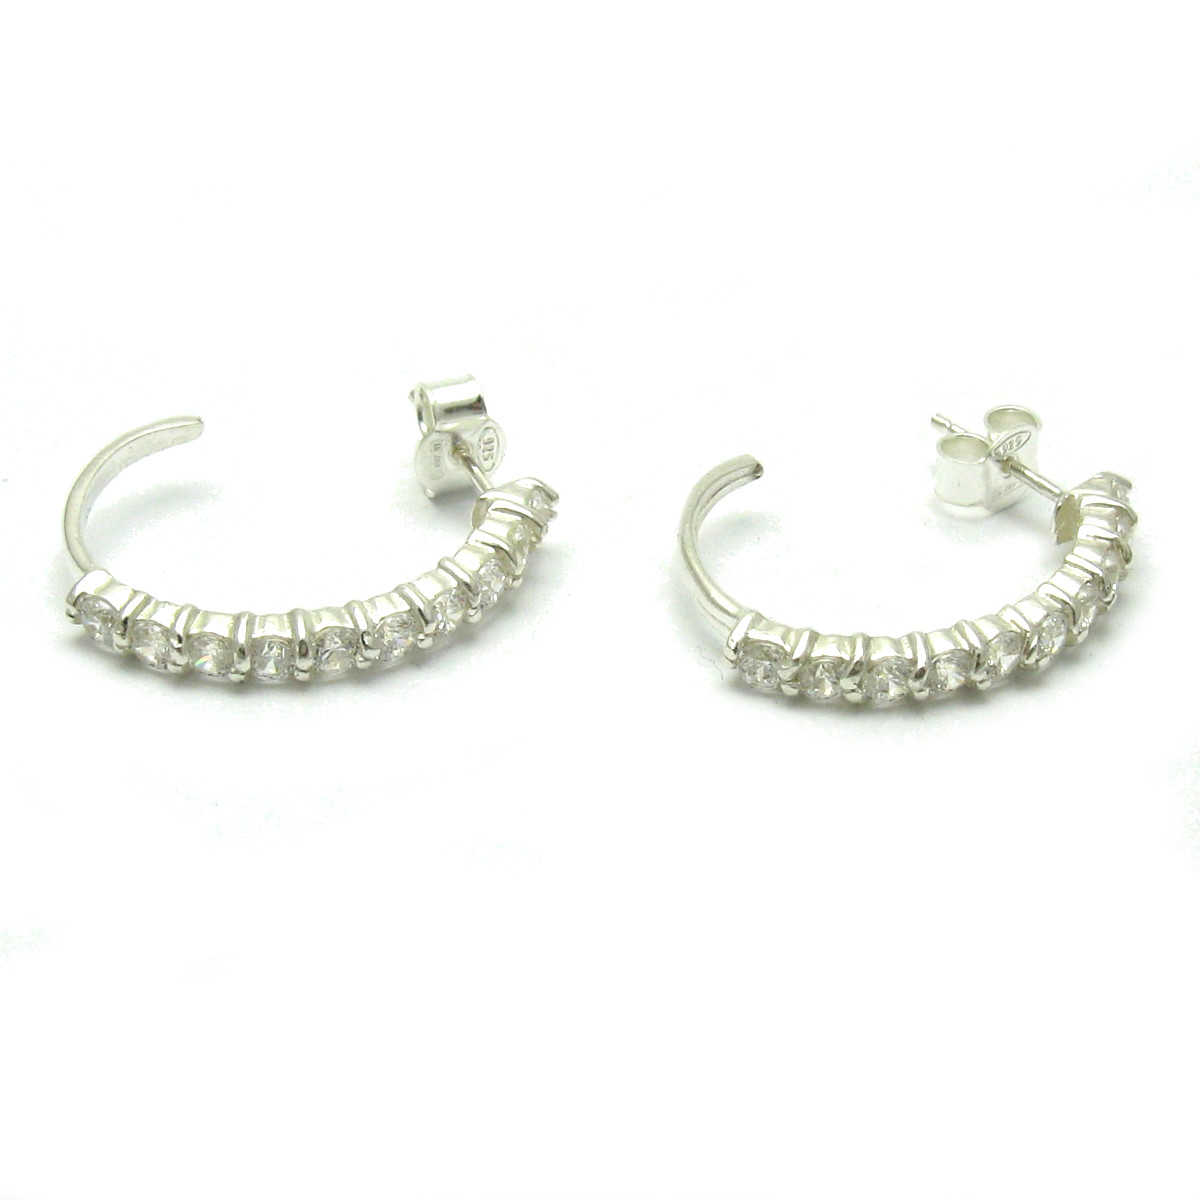 Silver earrings - E000125